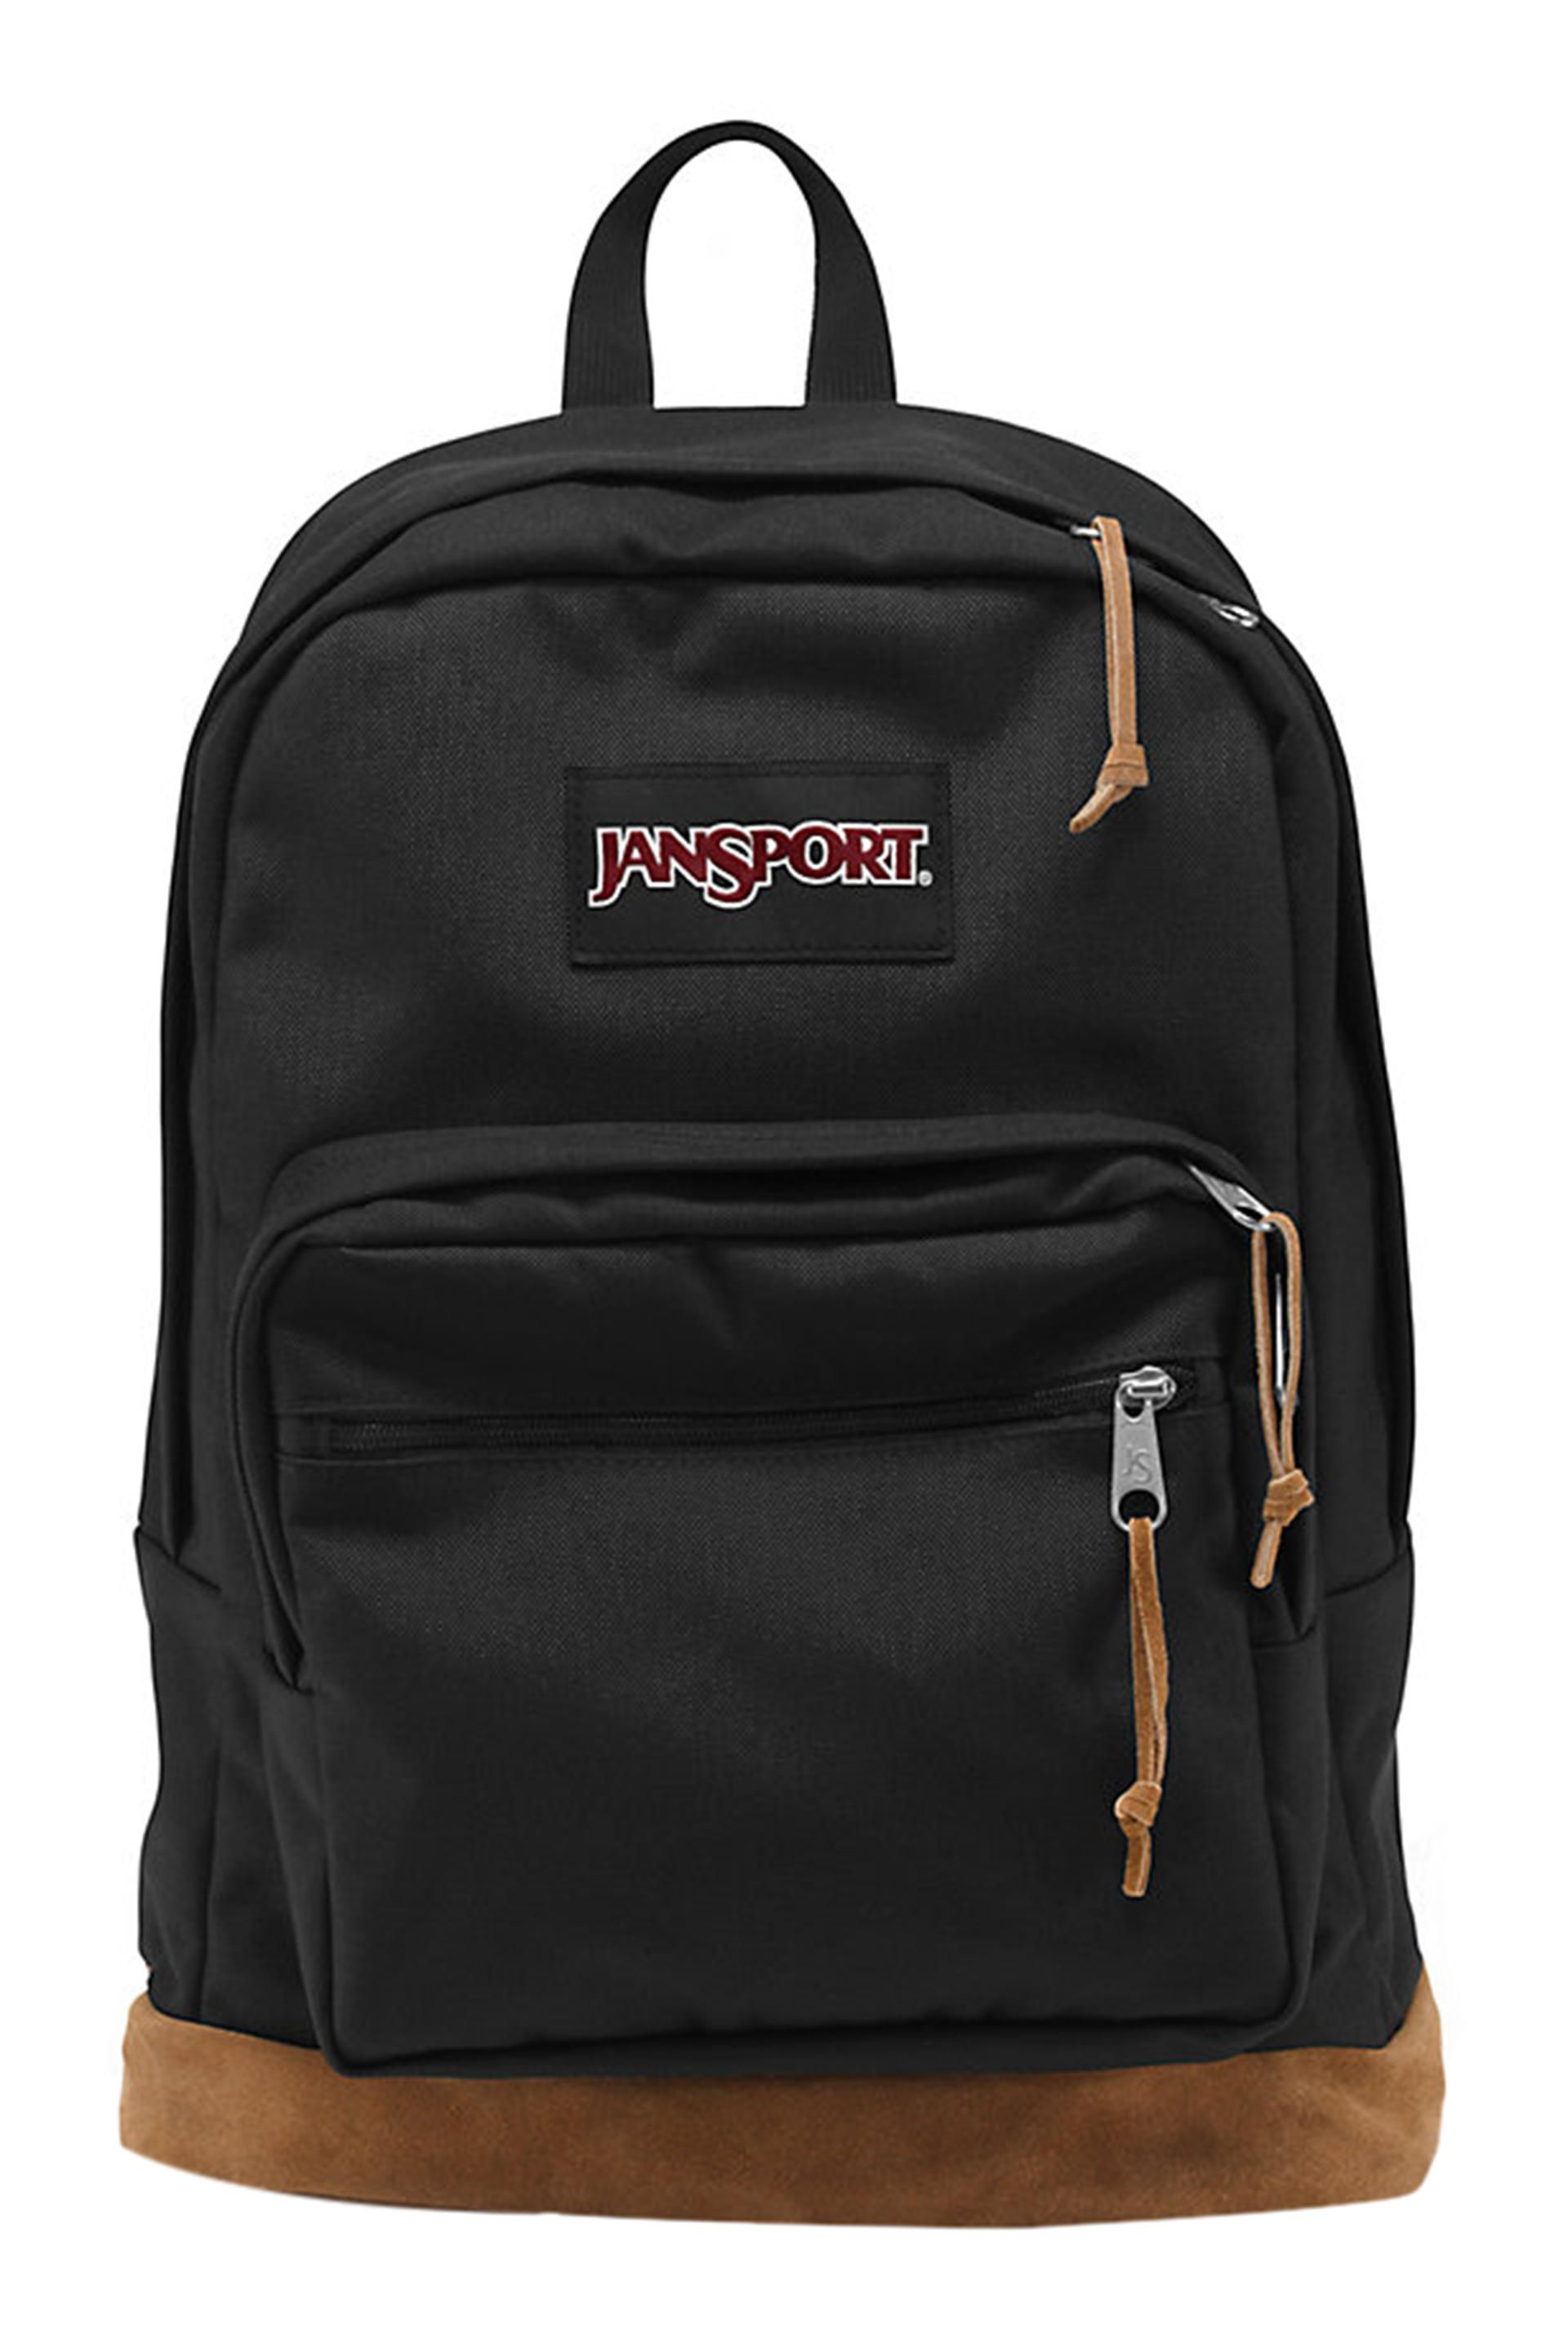 jansport right pack backpack black wearyouwant saved by